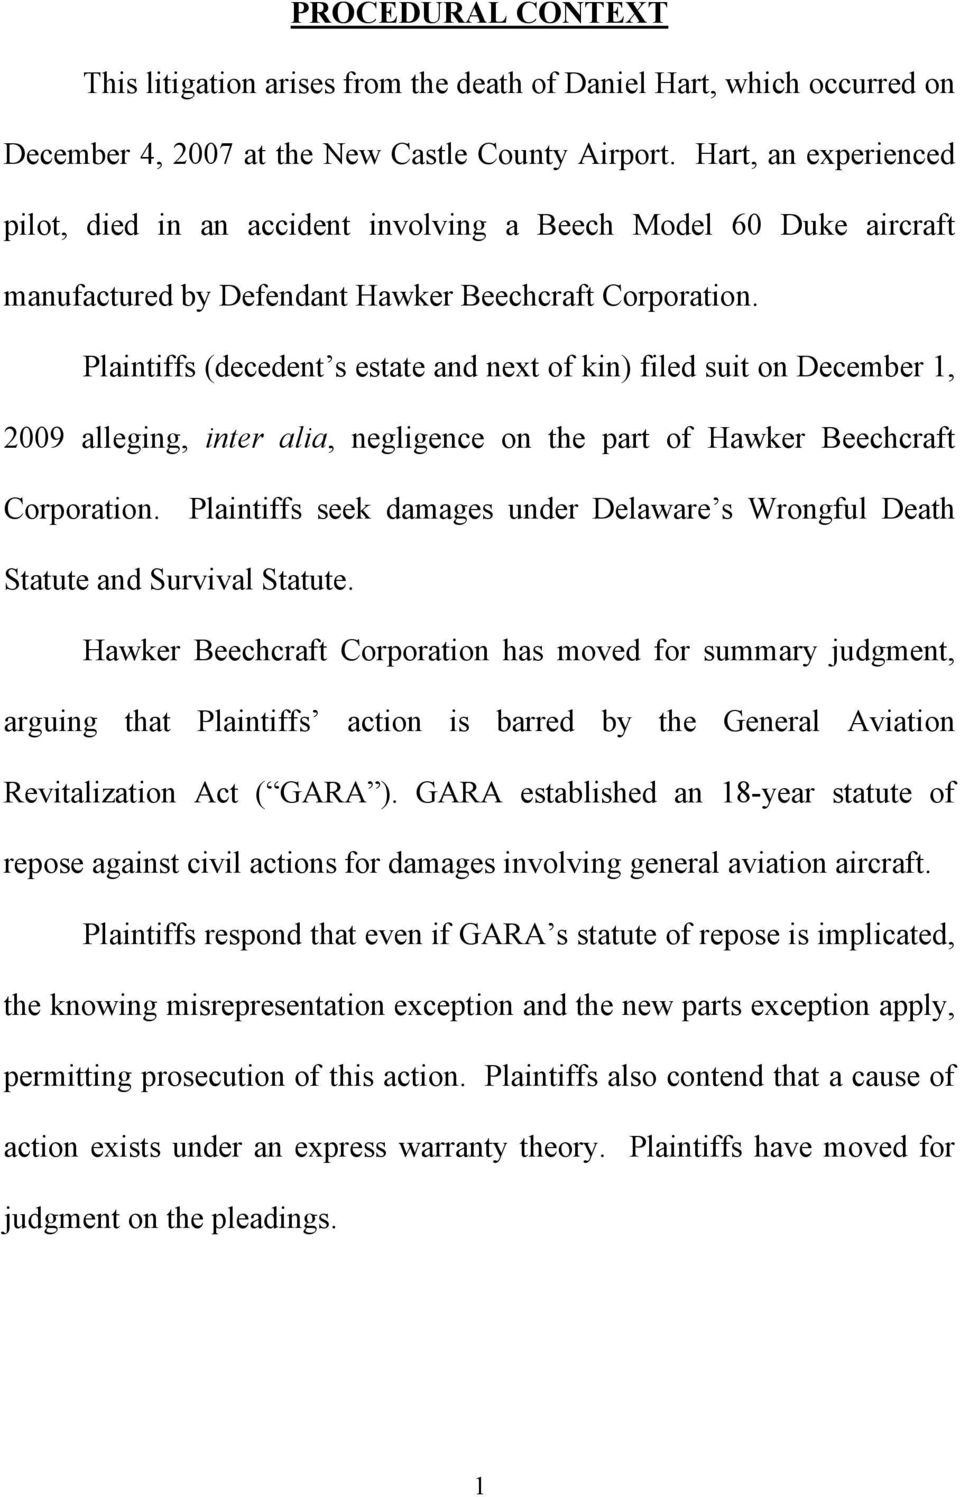 Plaintiffs (decedent s estate and next of kin filed suit on December 1, 2009 alleging, inter alia, negligence on the part of Hawker Beechcraft Corporation.